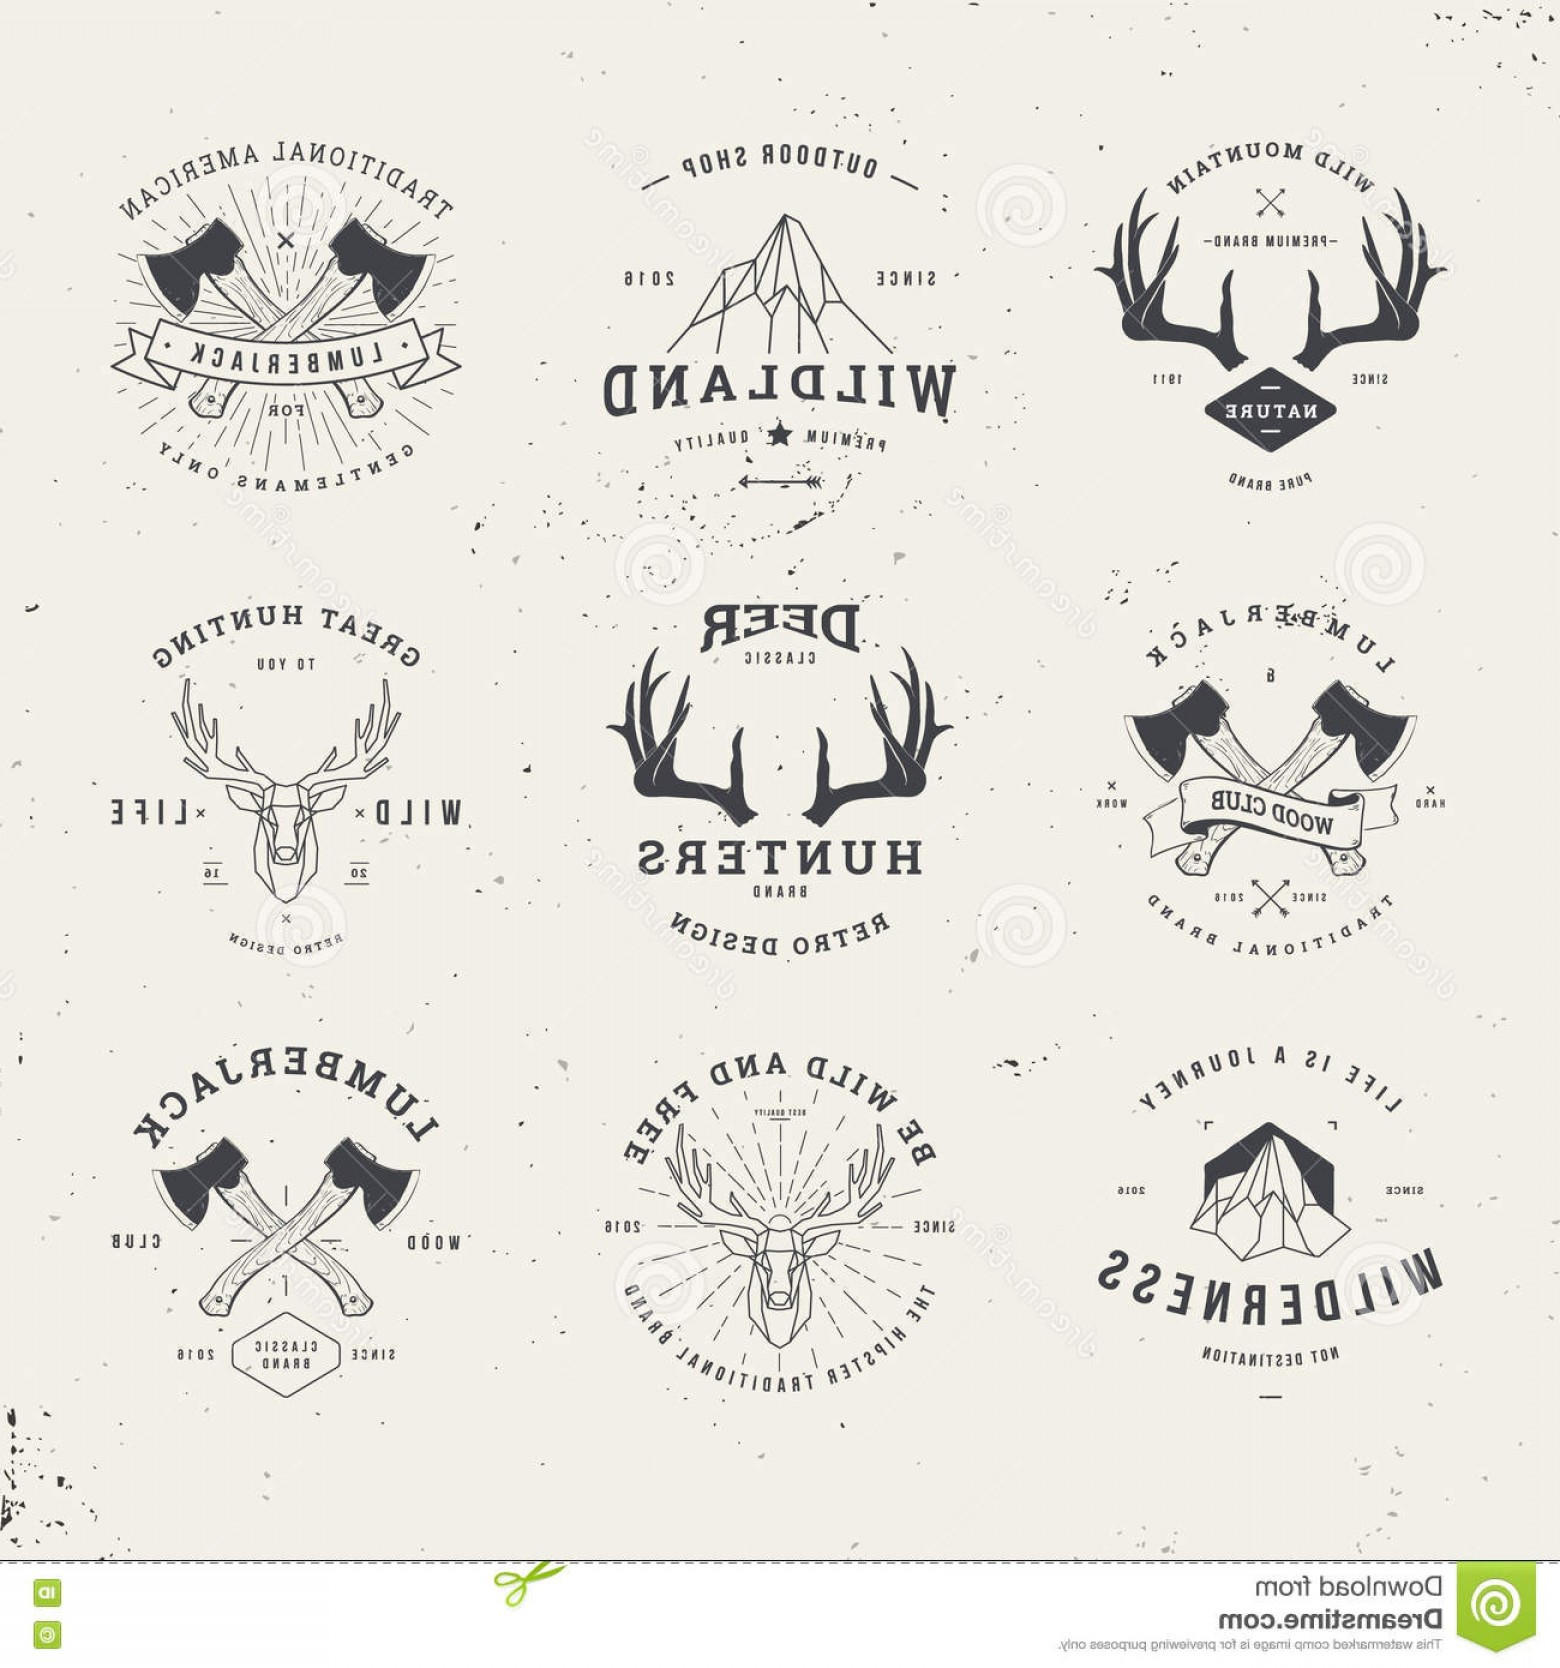 Hipster Logo Vectors Mountain: Stock Illustration Wildlife Hunters Logo Set Hipster Deer Antlers Axe Mountains Image